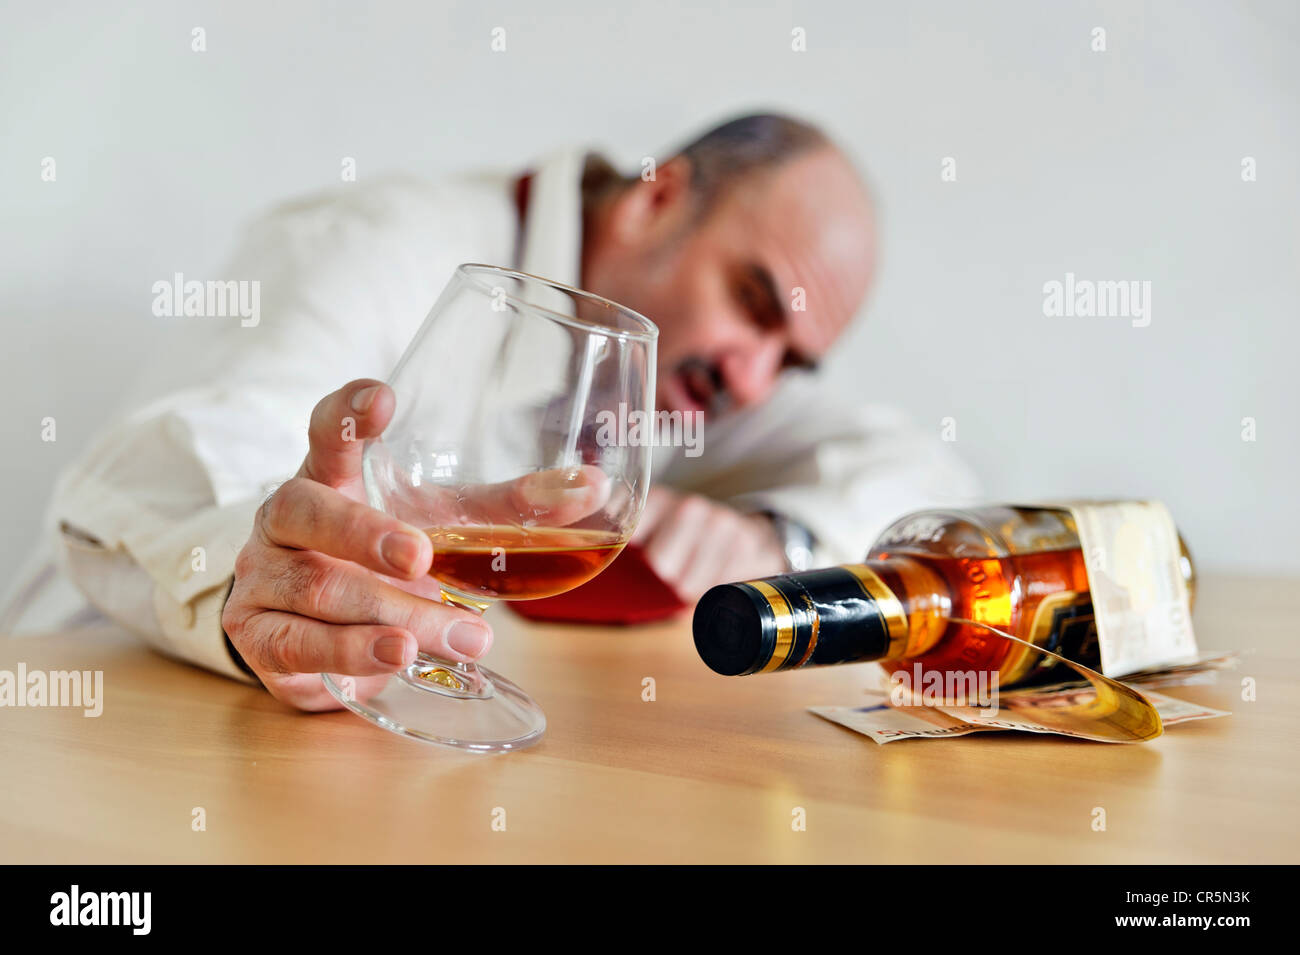 Alcohol addict holding a cognac glass, sitting with a bottle of alcohol at a table - Stock Image